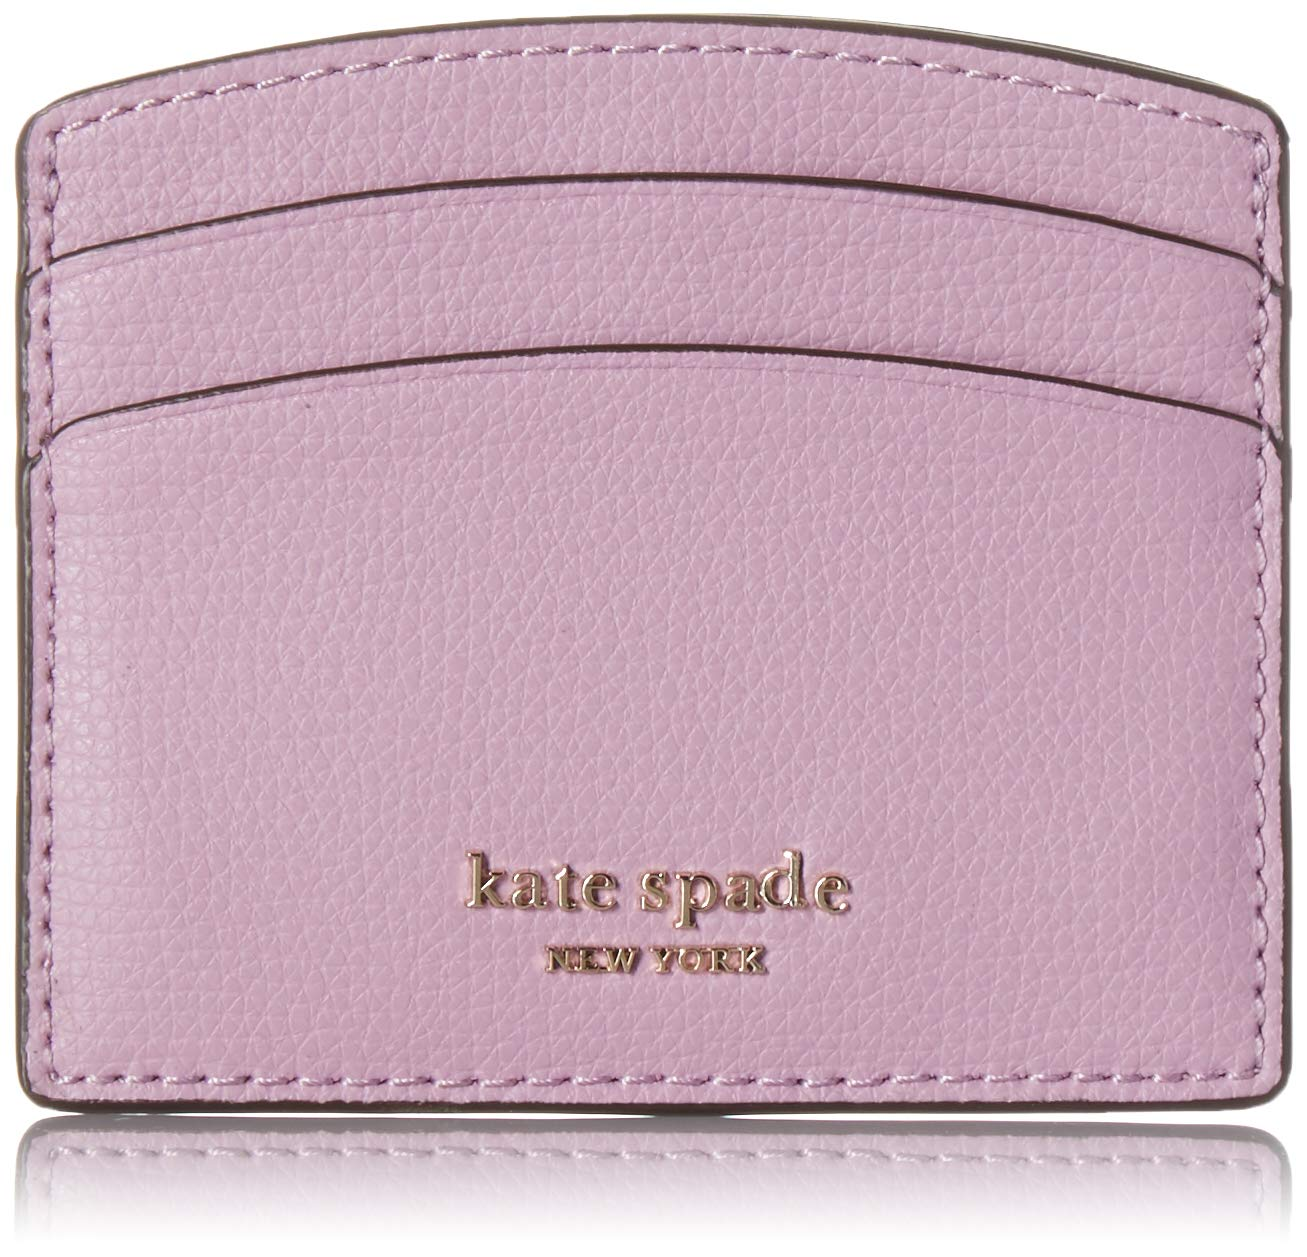 Kate Spade New York Women's Sylvia Card Holder Orchid One Size by Kate Spade New York